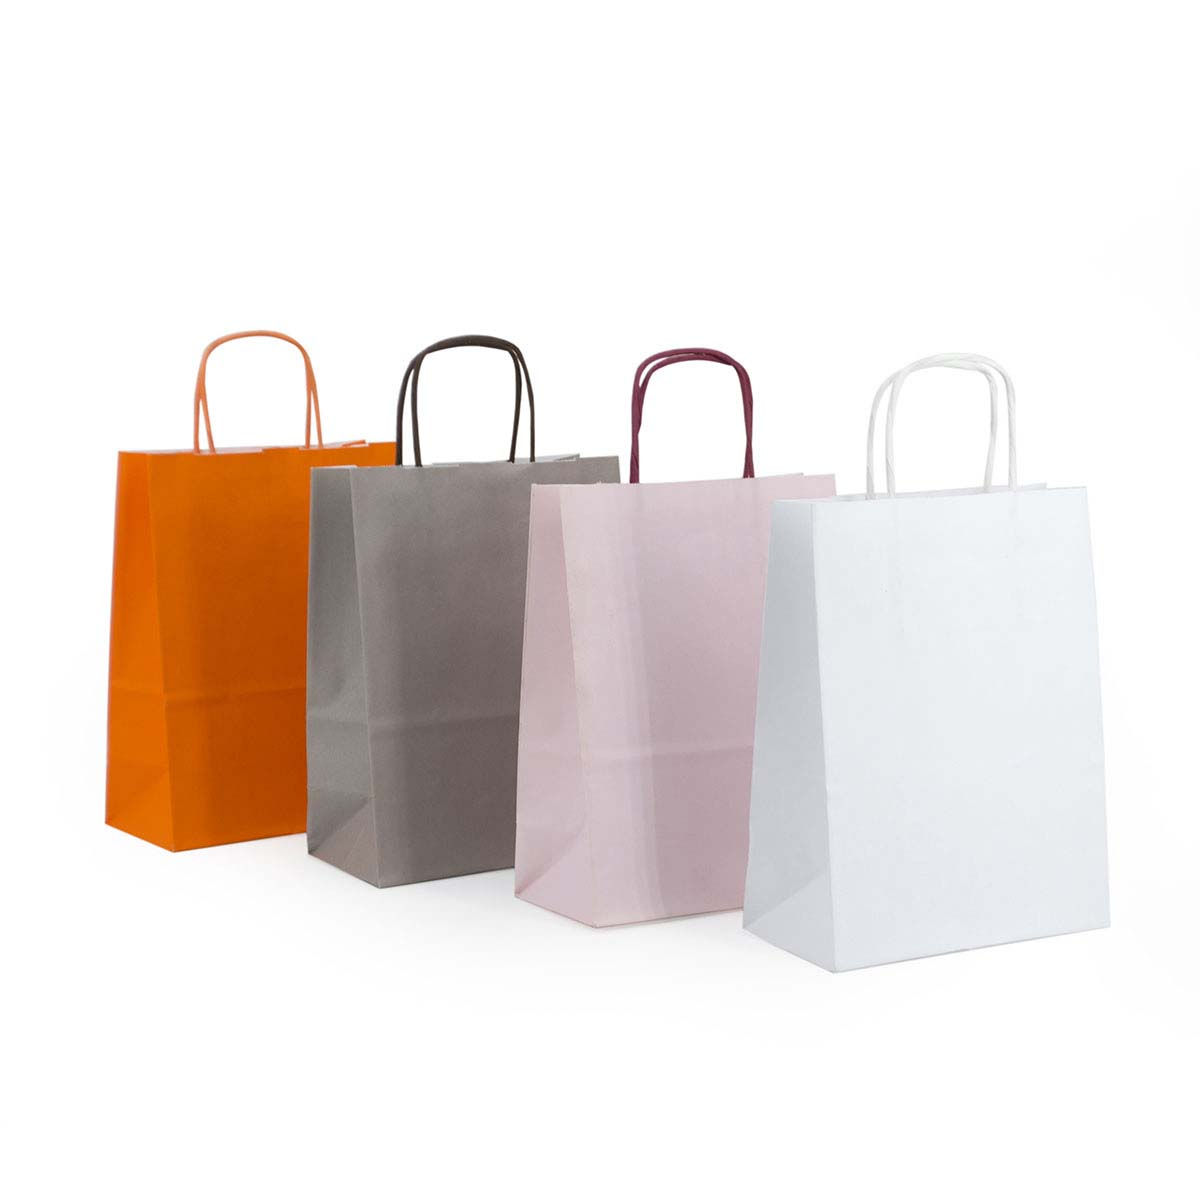 Shopper Rainbow: Generiche e colorate